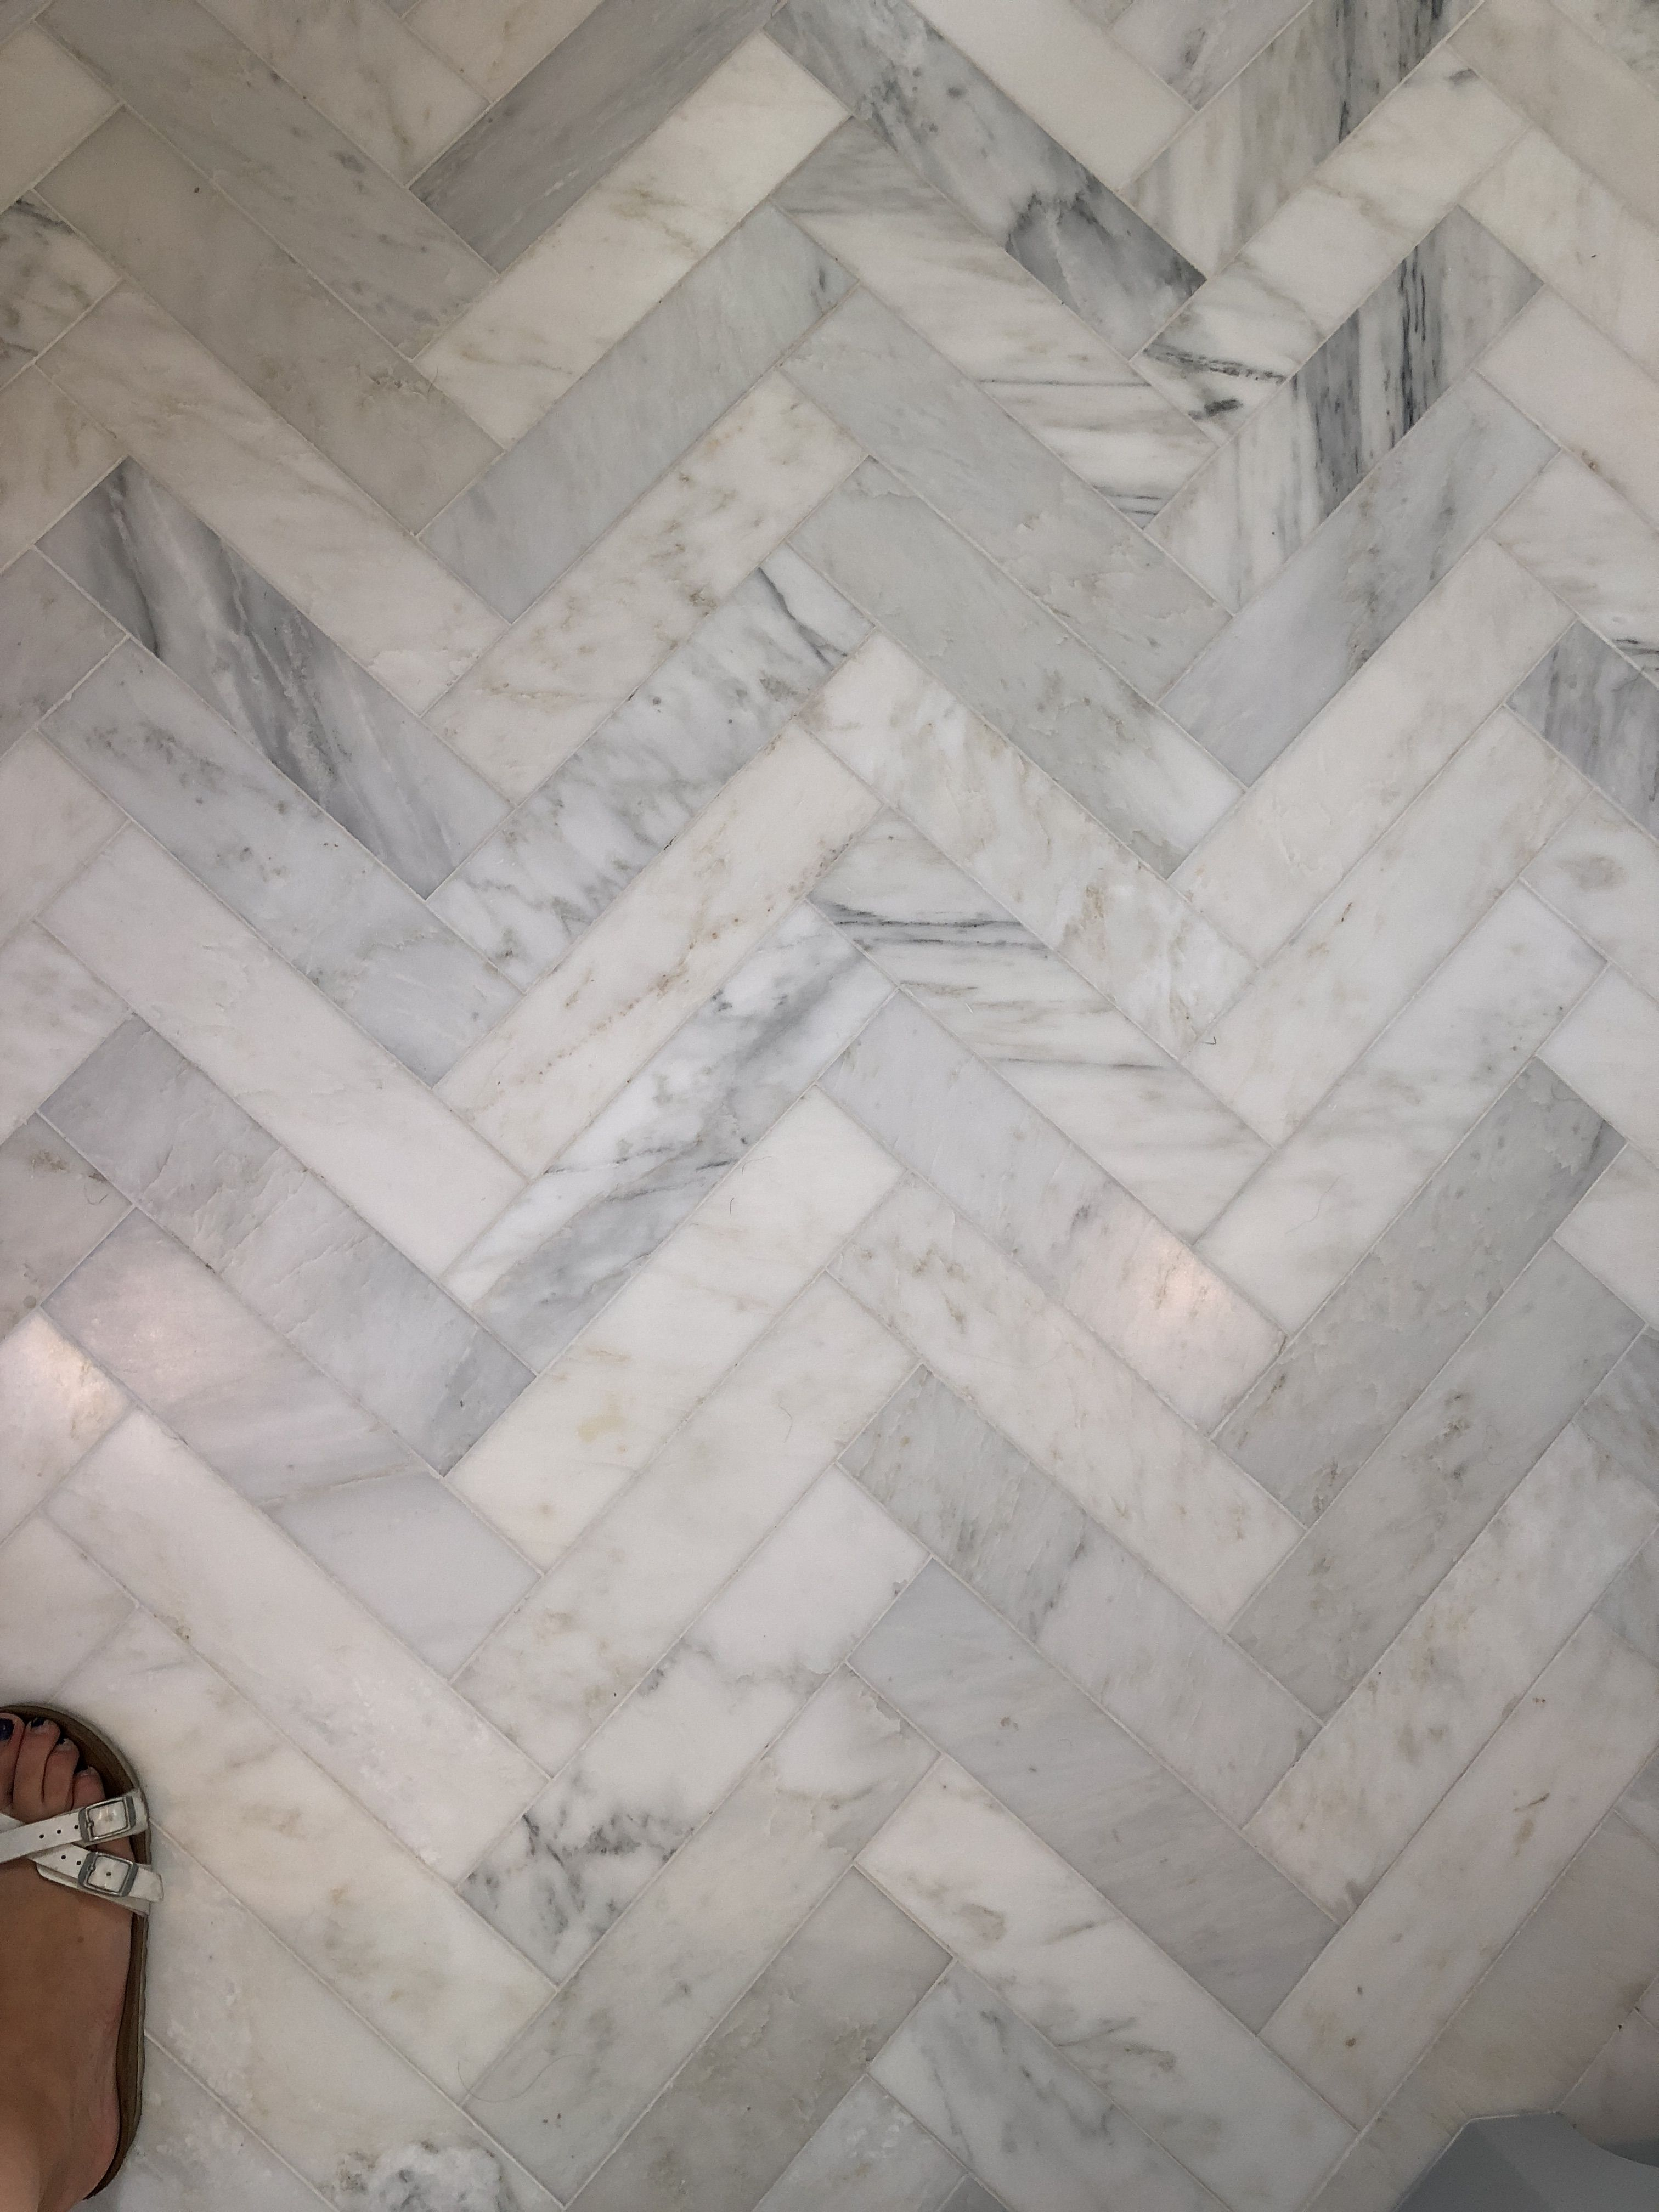 Harringbone Carrara Marble Floor Tile Apron 3 X 10 Main